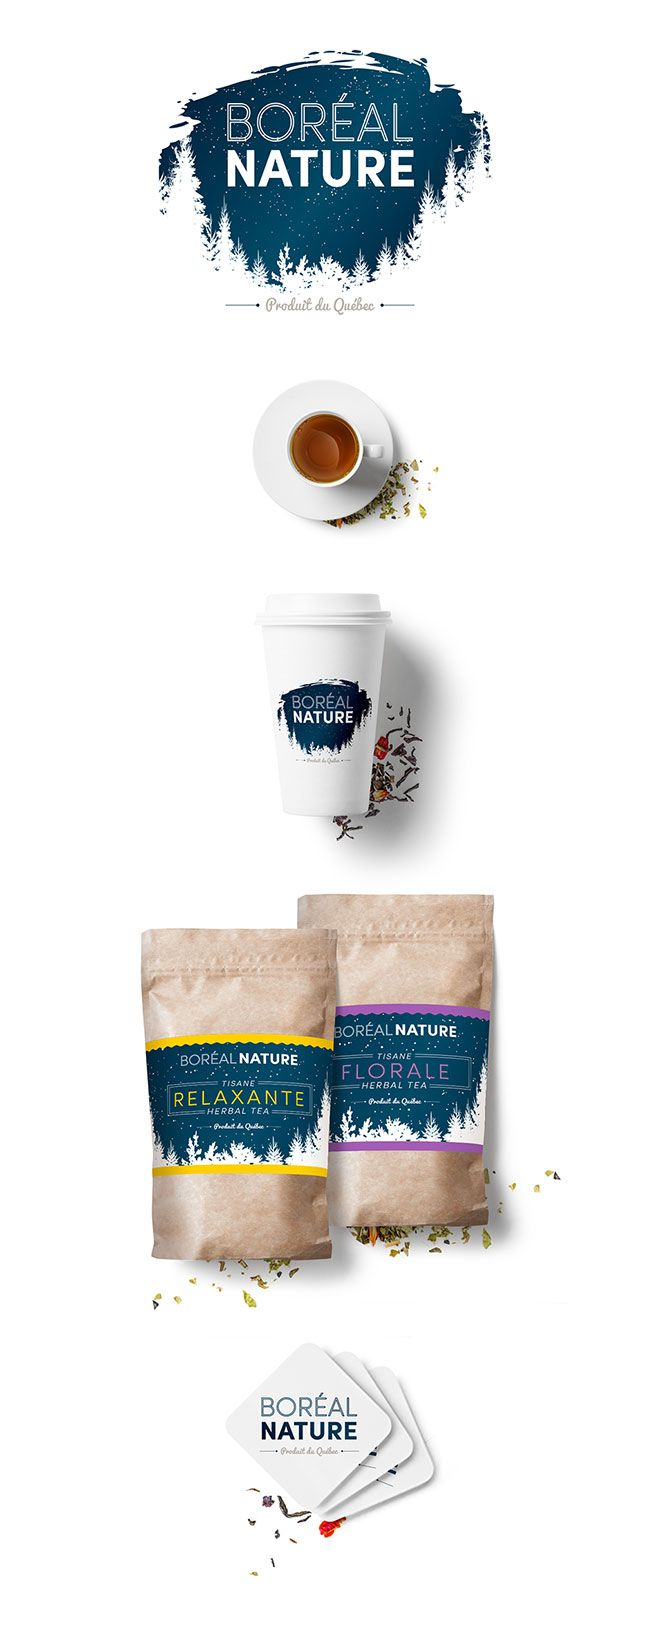 Food packaging. Herbal Tea packaging design. Design graphique image de marque tisane Boréal Nature.